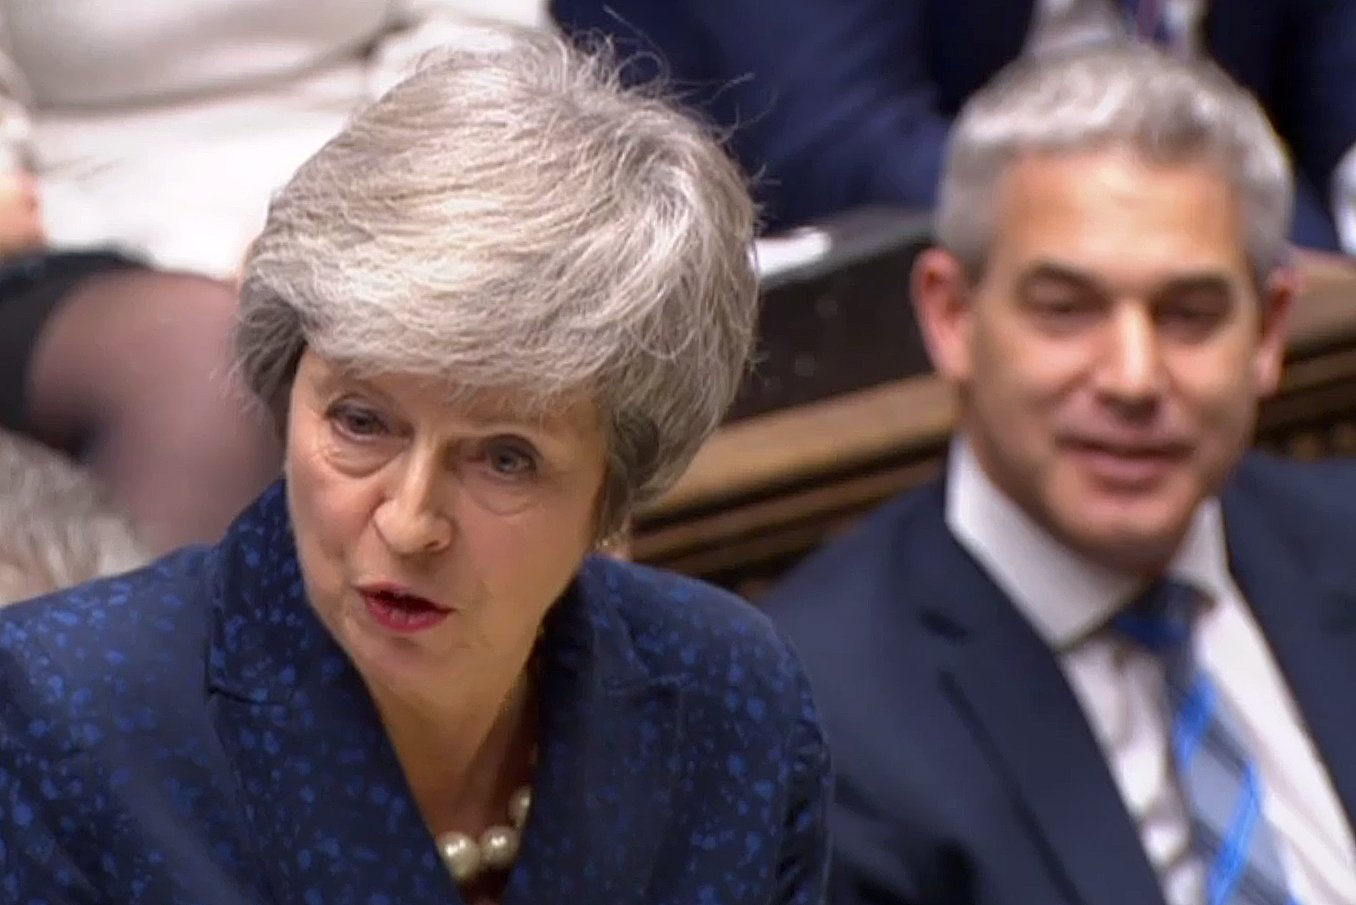 "A video grab from footage broadcast by the UK Parliament's Parliamentary Recording Unit (PRU) shows Britain's Secretary of State for Exiting the European Union (Brexit Minister) Stephen Barclay (R) listen as Britain's Prime Minister Theresa May speaks during the weekly Prime Minister's Questions (PMQs) in the House of Commons in London on December 12, 2017. - Prime Minister Theresa May was on Wednesday to face a vote of no-confidence by MPs in her party over her handling of negotiations with the European Union about Britain's exit from the bloc. May said she will contest a confidence vote in her leadership ""with everything I've got"", adding that changing course now could derail the Brexit process. (Photo by HO / PRU / AFP) / RESTRICTED TO EDITORIAL USE - MANDATORY CREDIT "" AFP PHOTO / PRU "" - NO USE FOR ENTERTAINMENT, SATIRICAL, MARKETING OR ADVERTISING CAMPAIGNSHO/AFP/Getty Images"